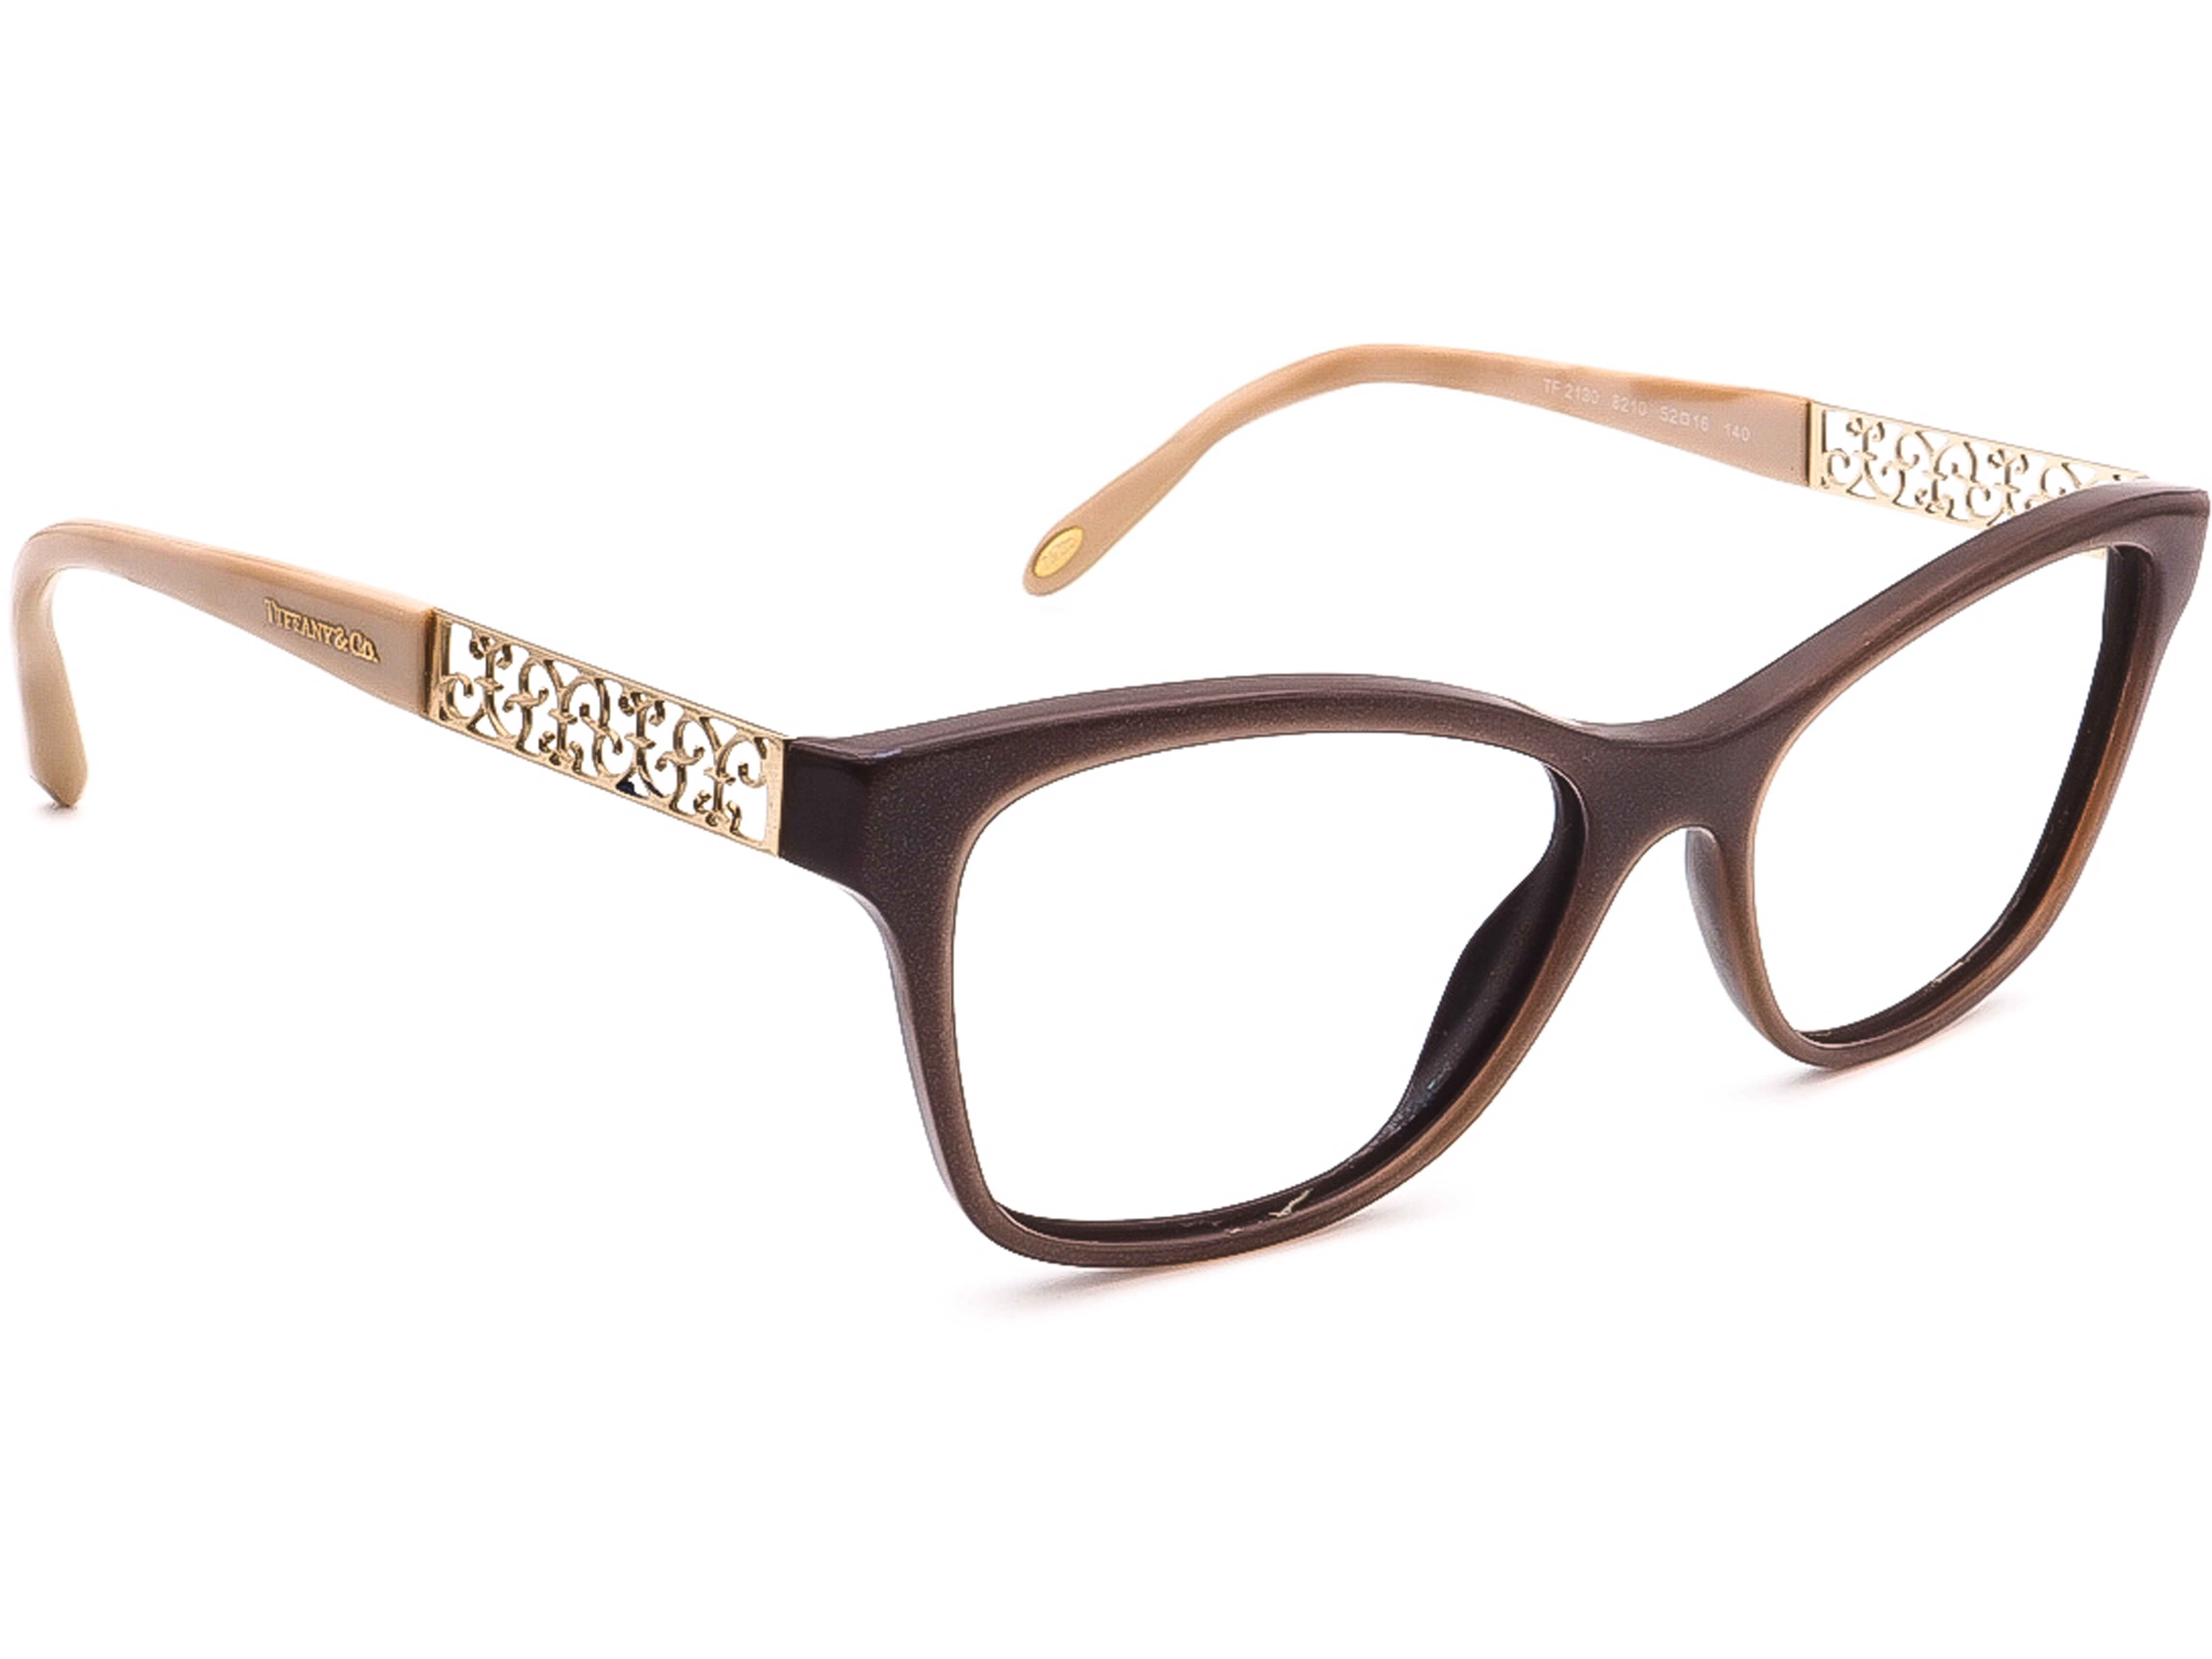 Tiffany & Co. TF 2130-F 8210 Eyeglasses